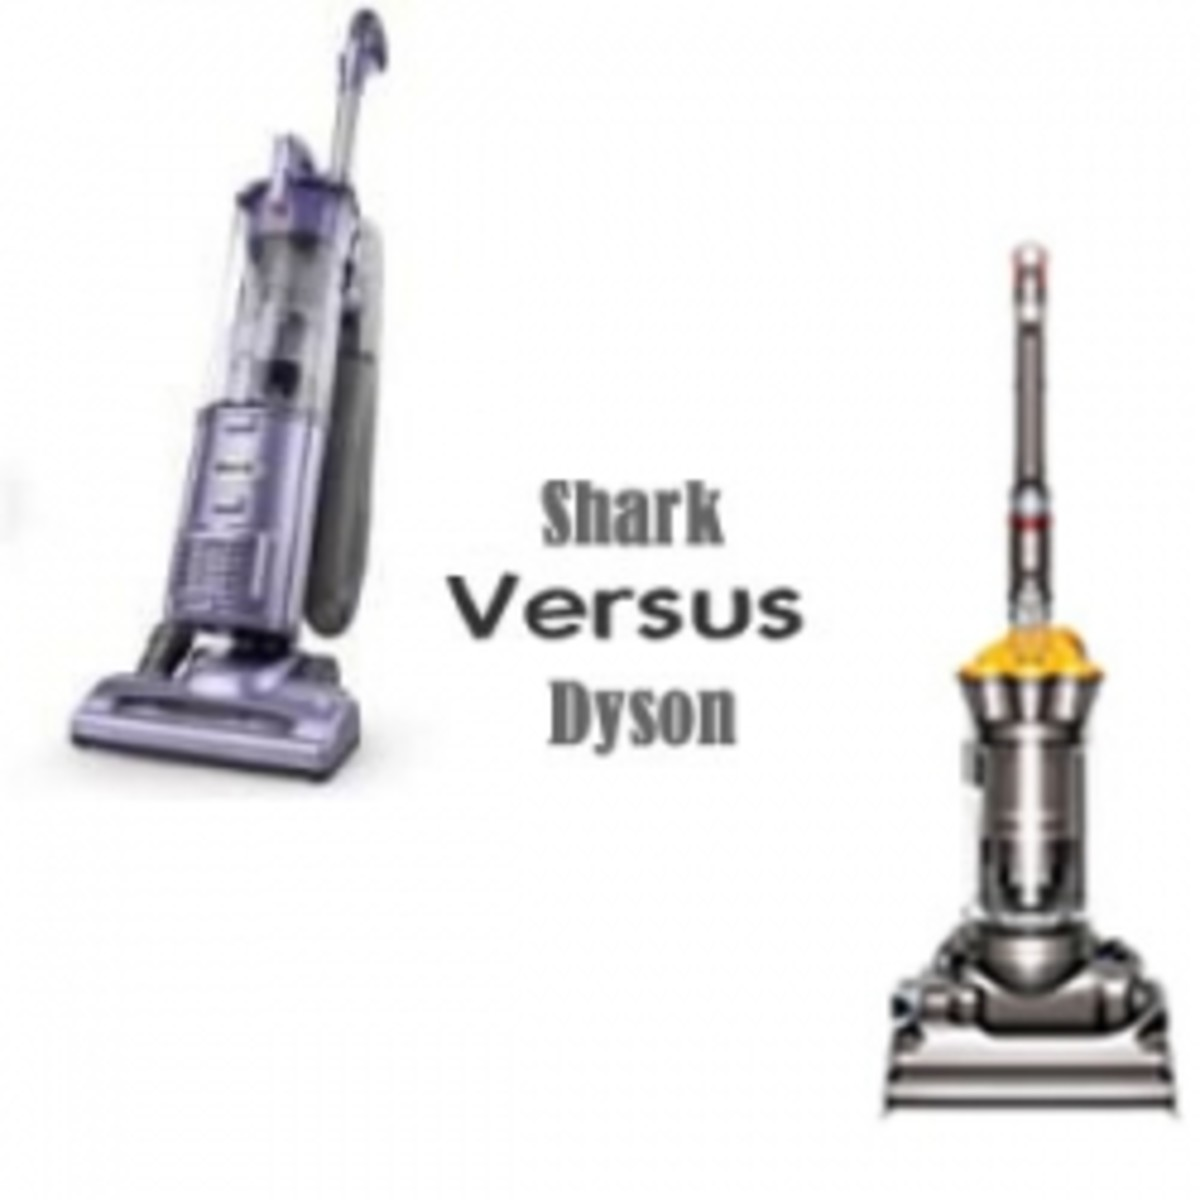 comparing shark vs dyson vacuum cleaners an indepth review hubpages - Shark Vacuum Cleaners